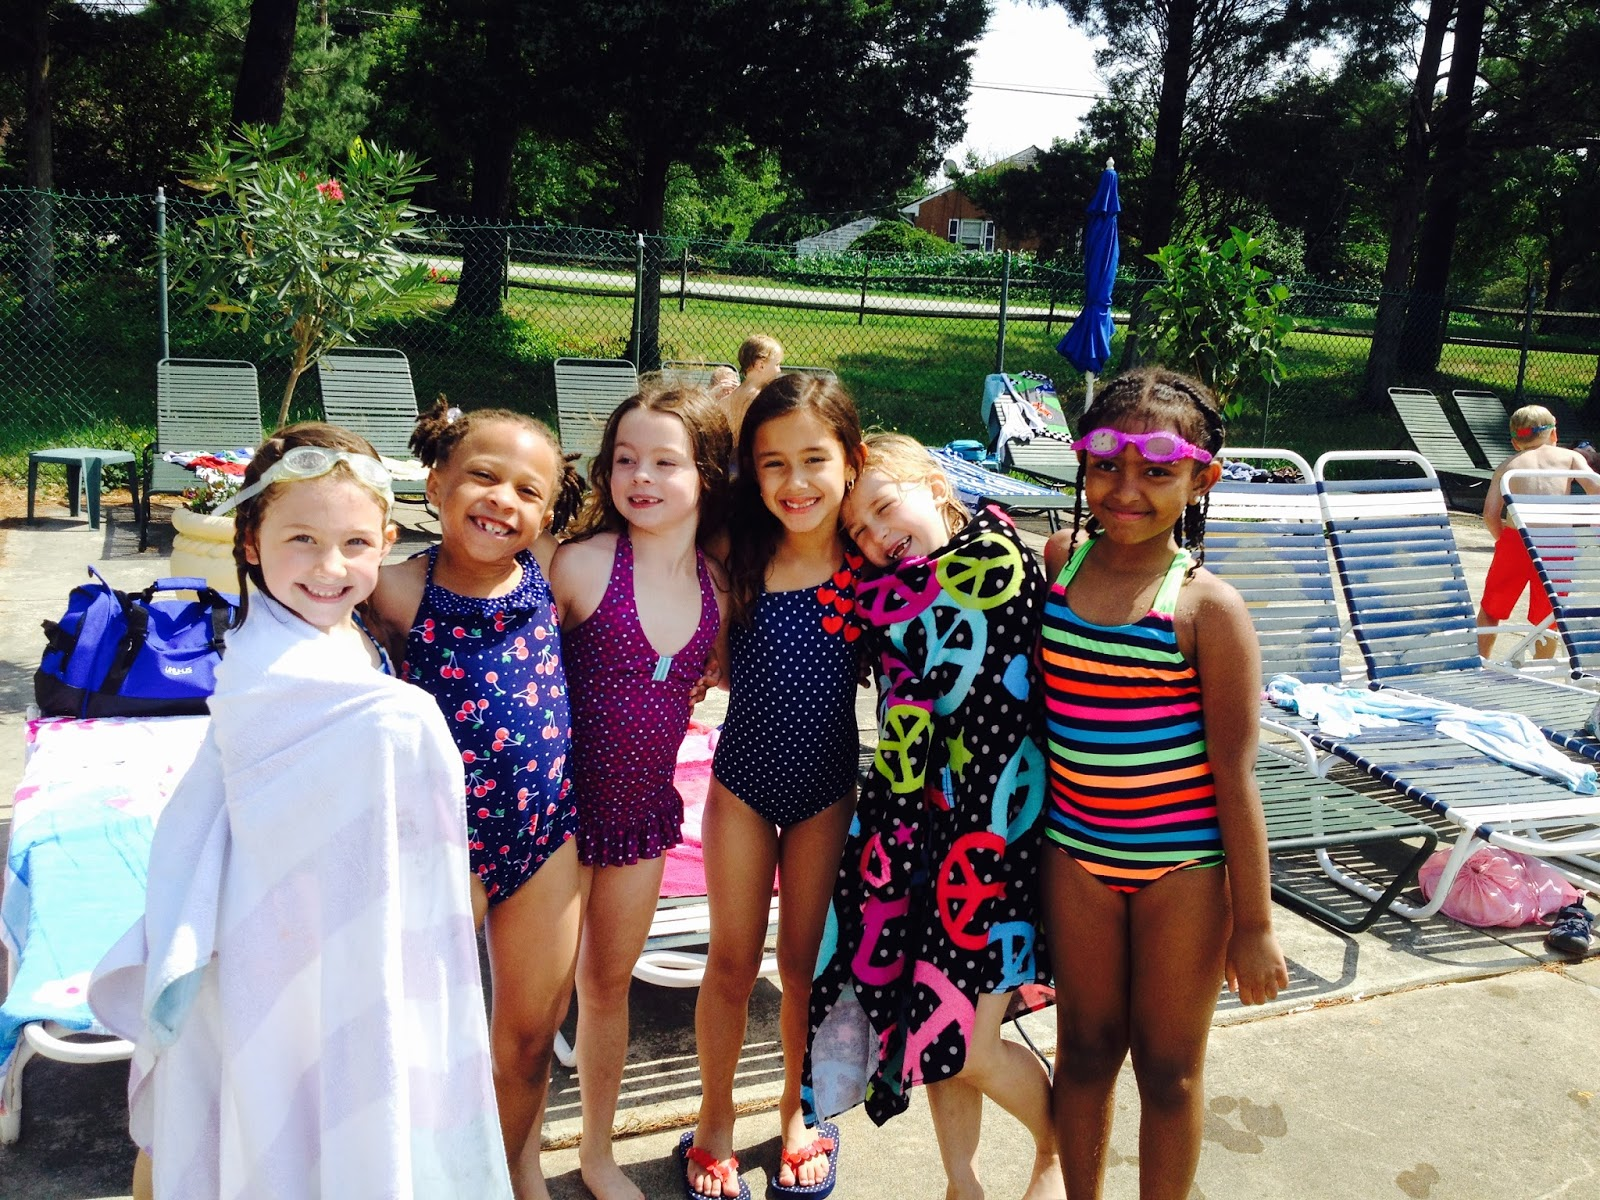 pictures of st grade girls pool party